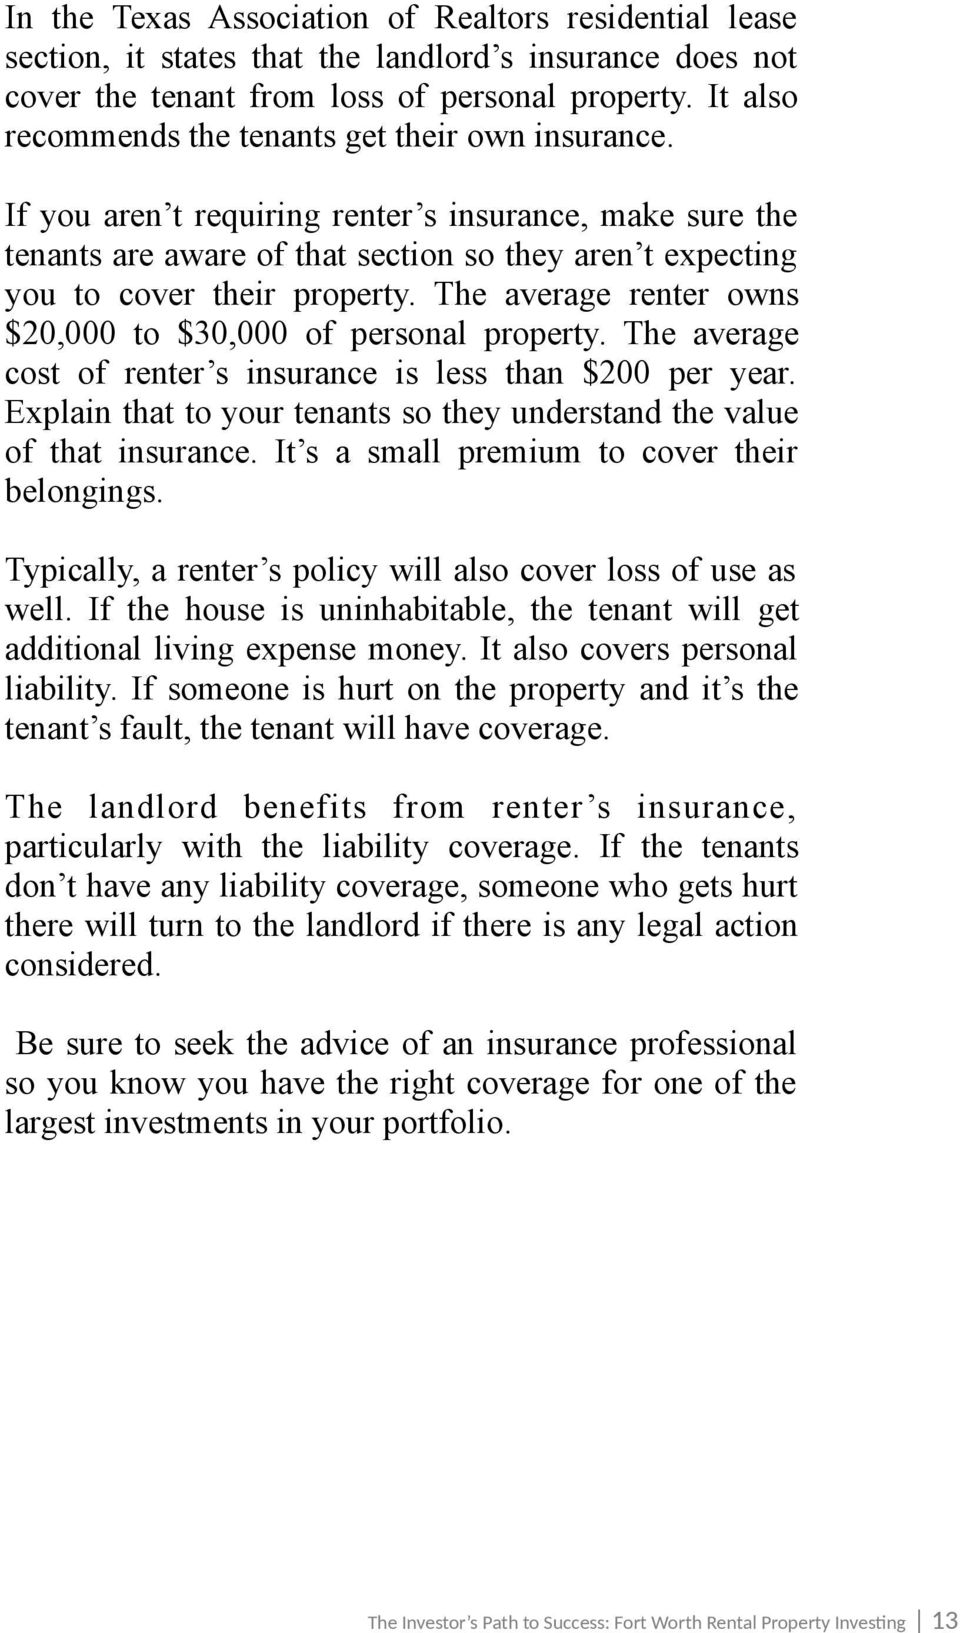 If you aren t requiring renter s insurance, make sure the tenants are aware of that section so they aren t expecting you to cover their property.